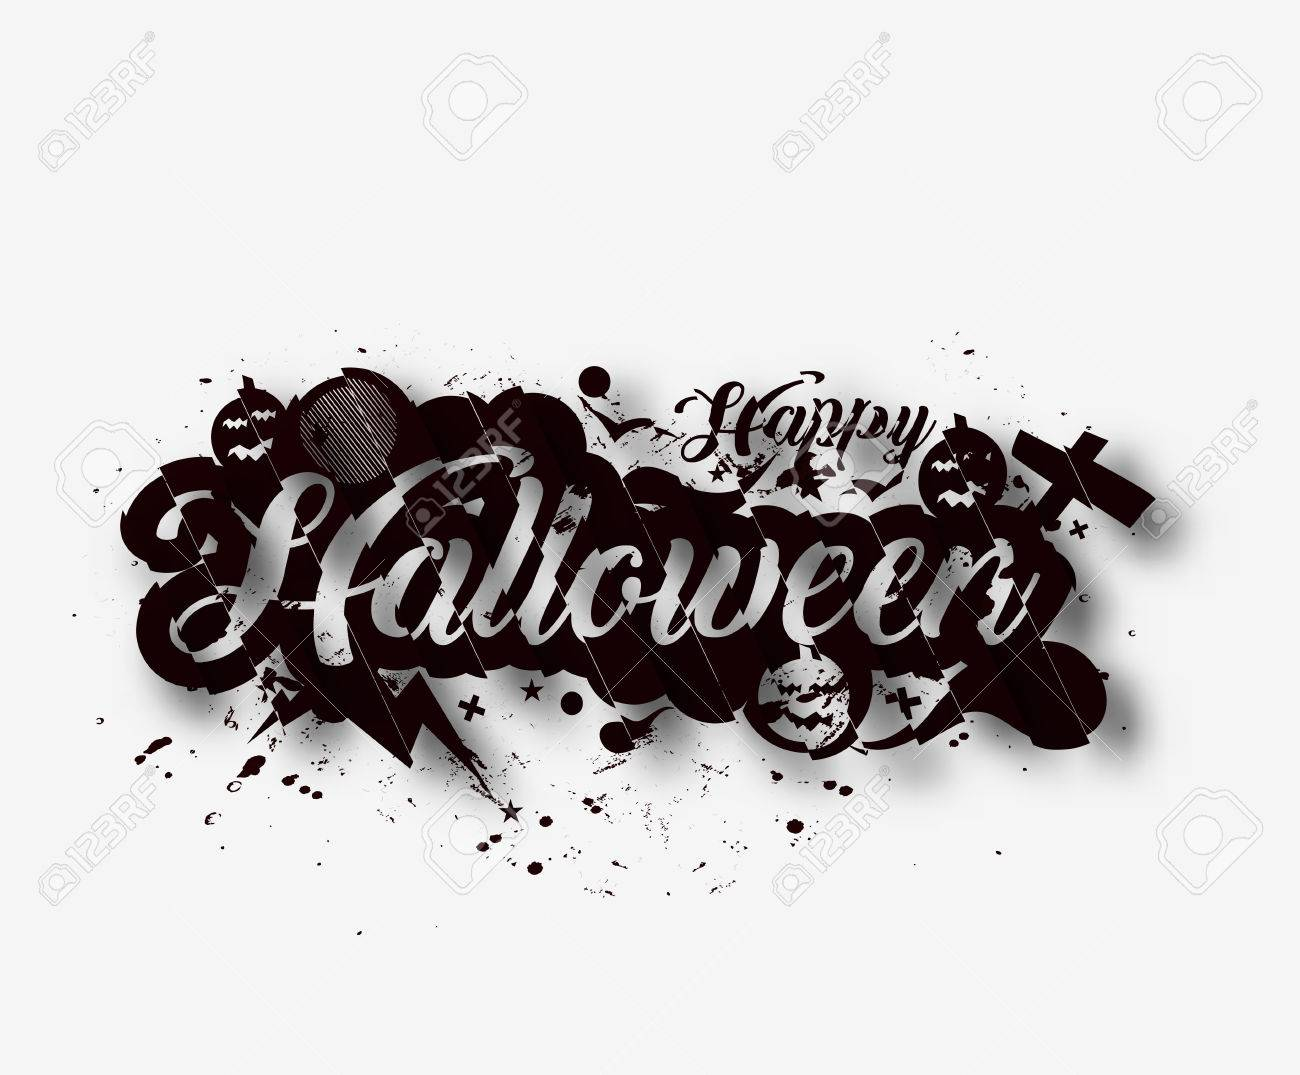 Happy halloween greeting card calligraphy text design halloween